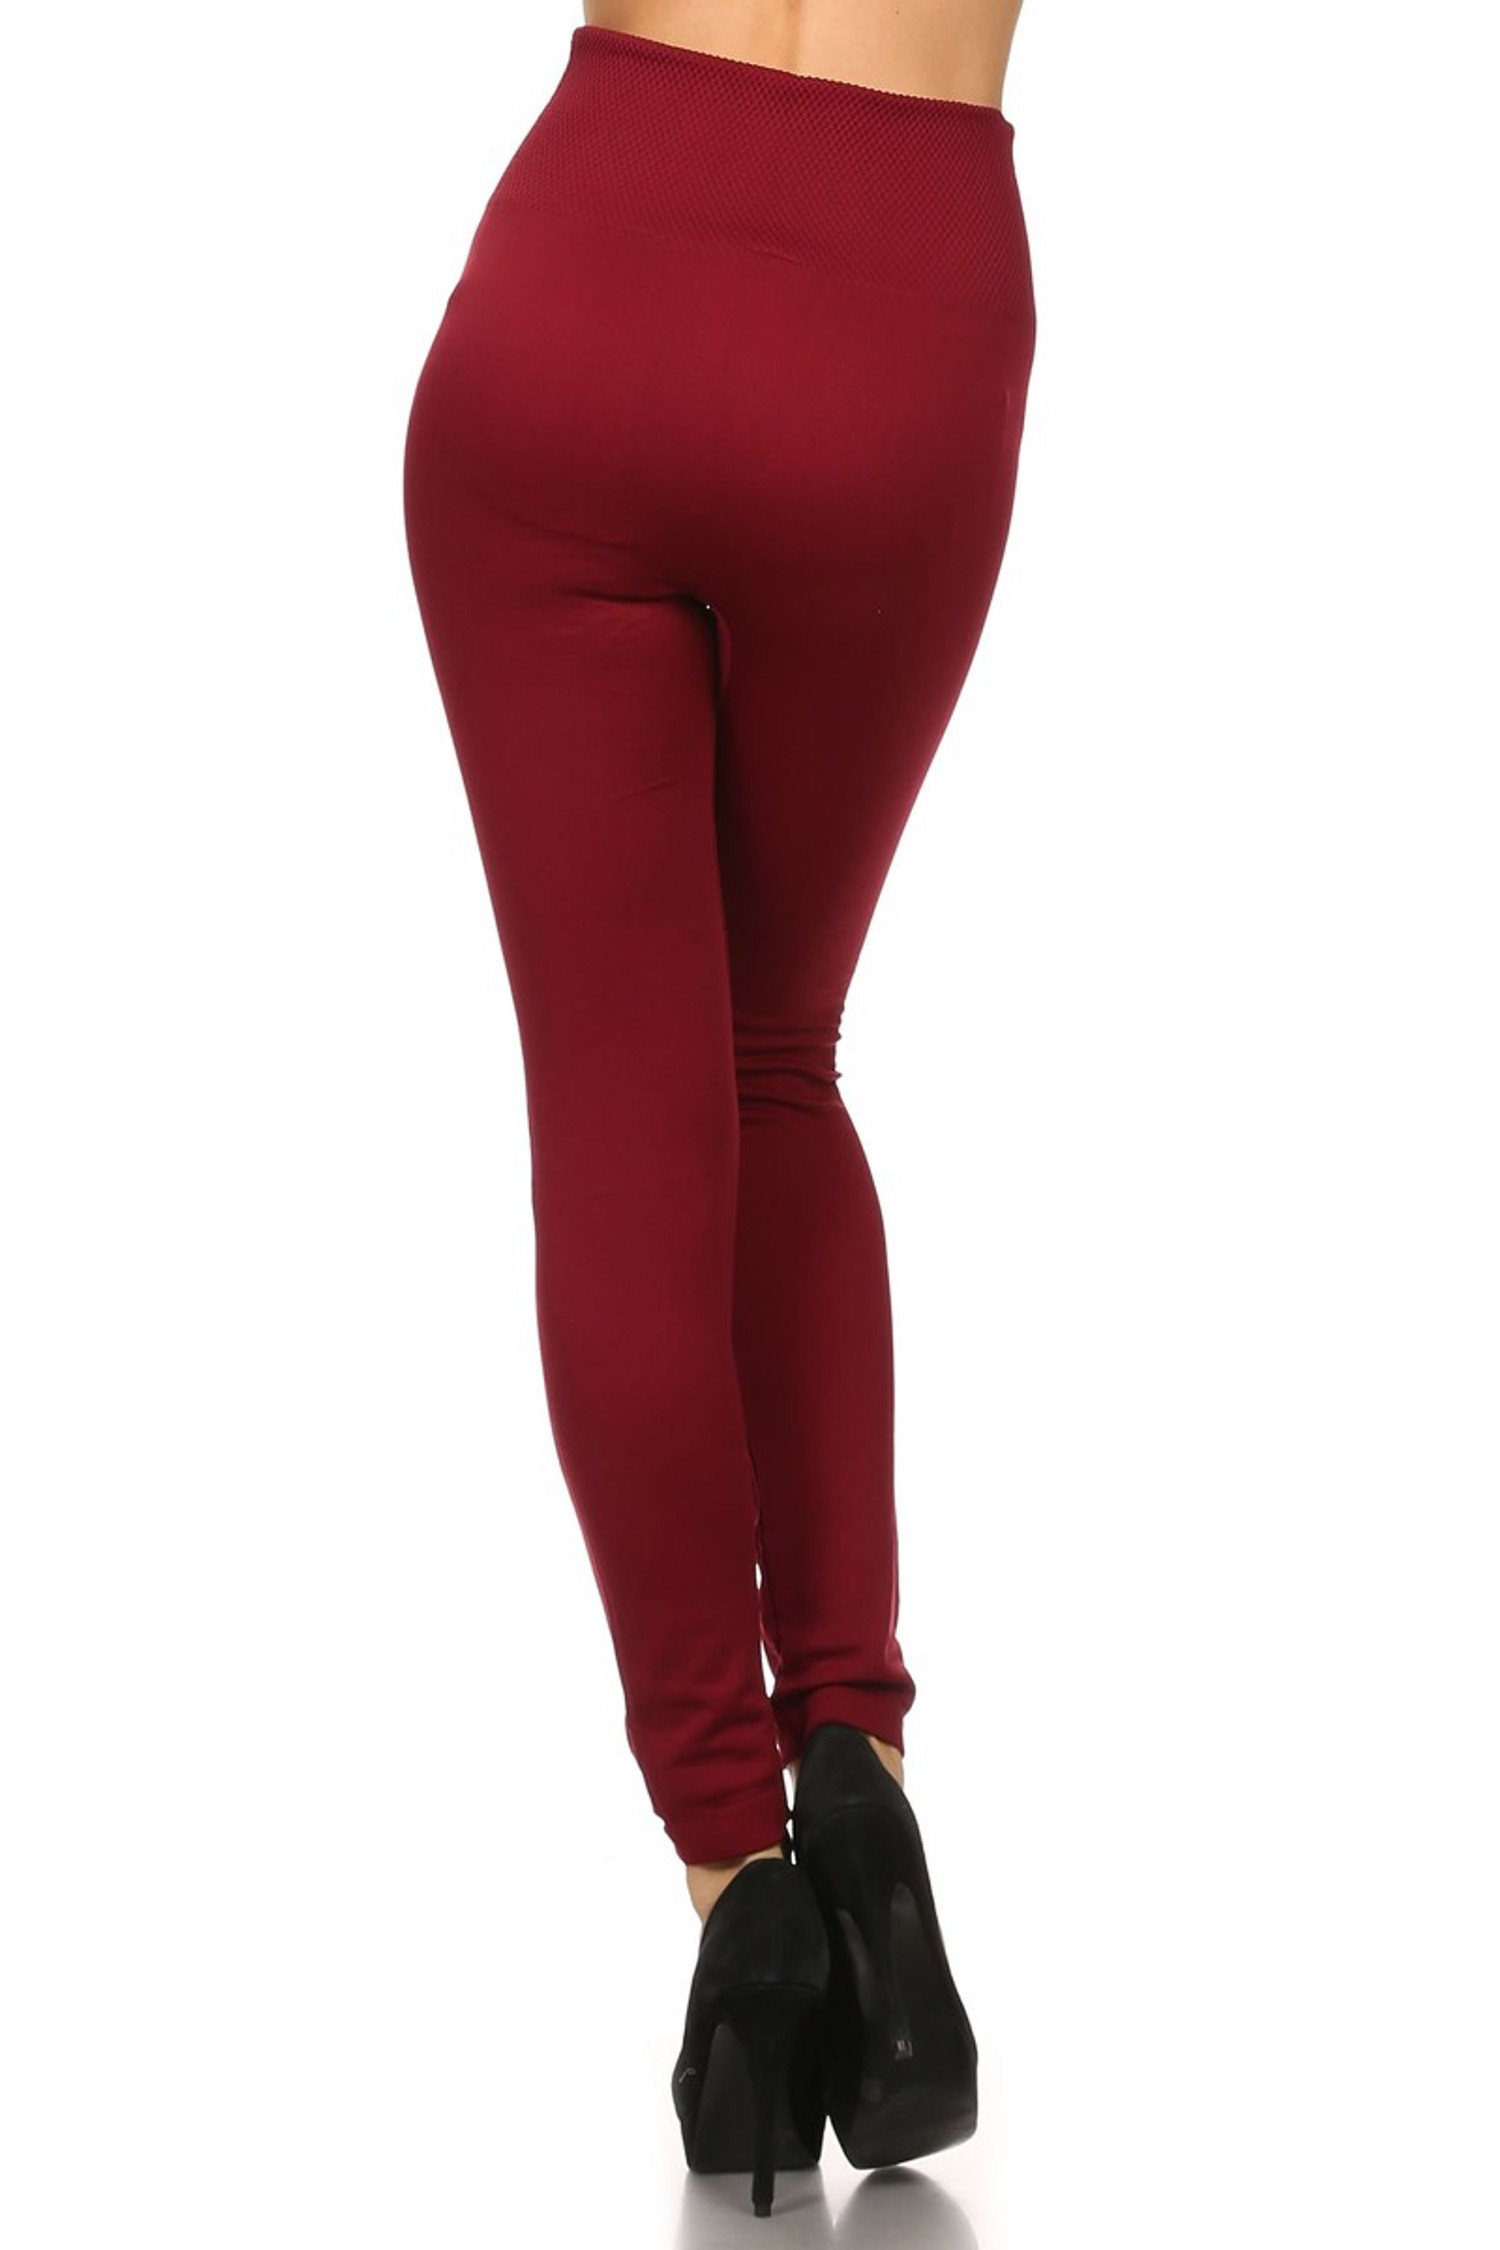 Rear image of our Burgundy Banded High Waisted Fleece Lined Leggings showing the ribbed high waisted fabric waist band and soft and comfortable full length fit of the fleece fabric